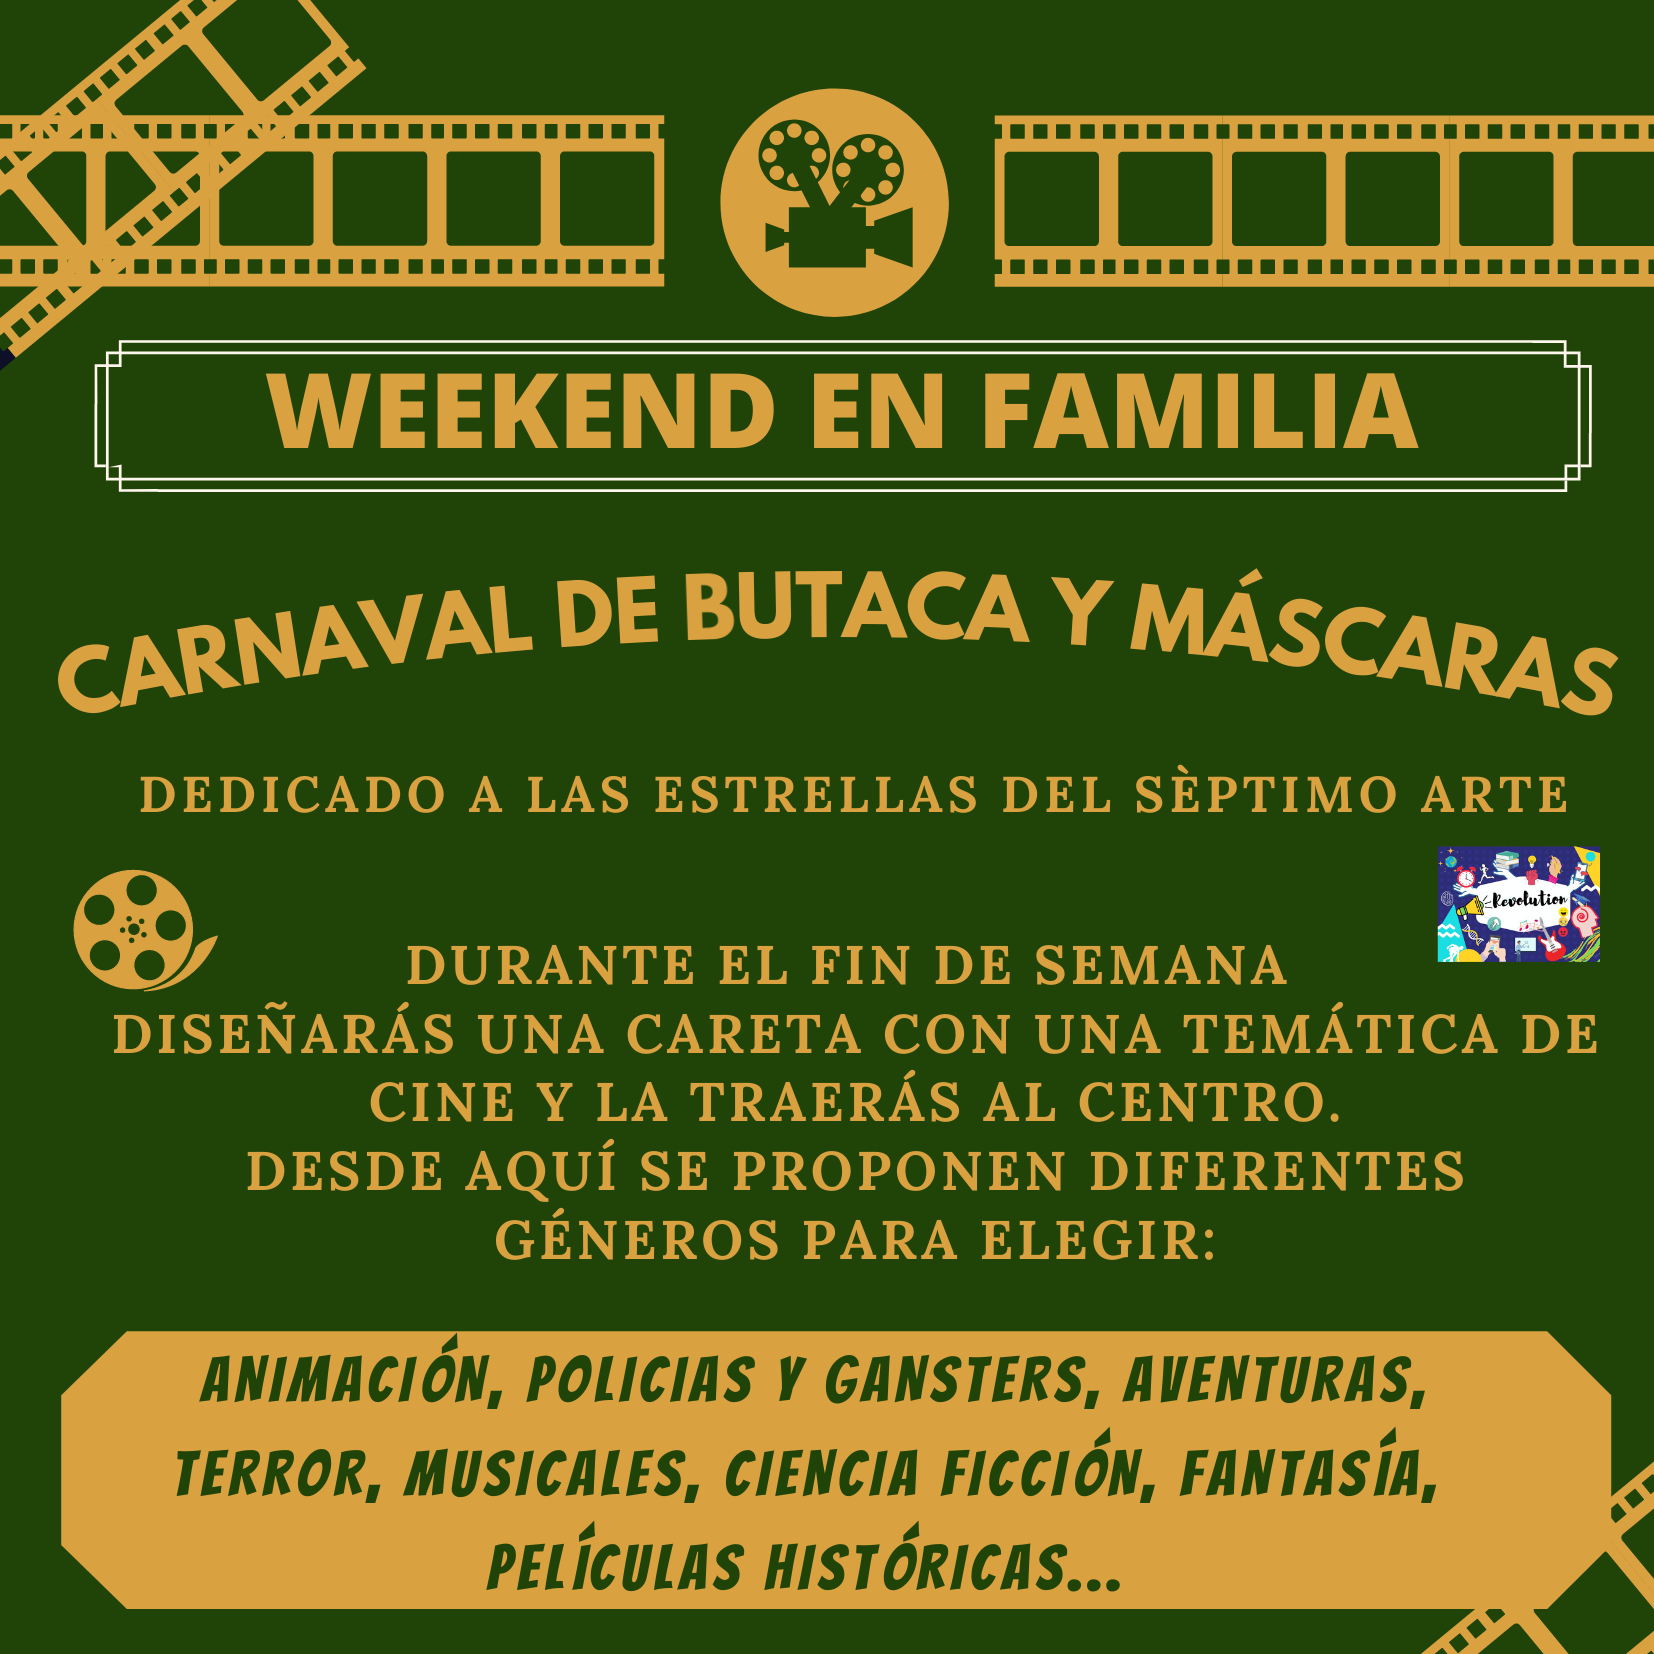 weekend en familia. carnaval